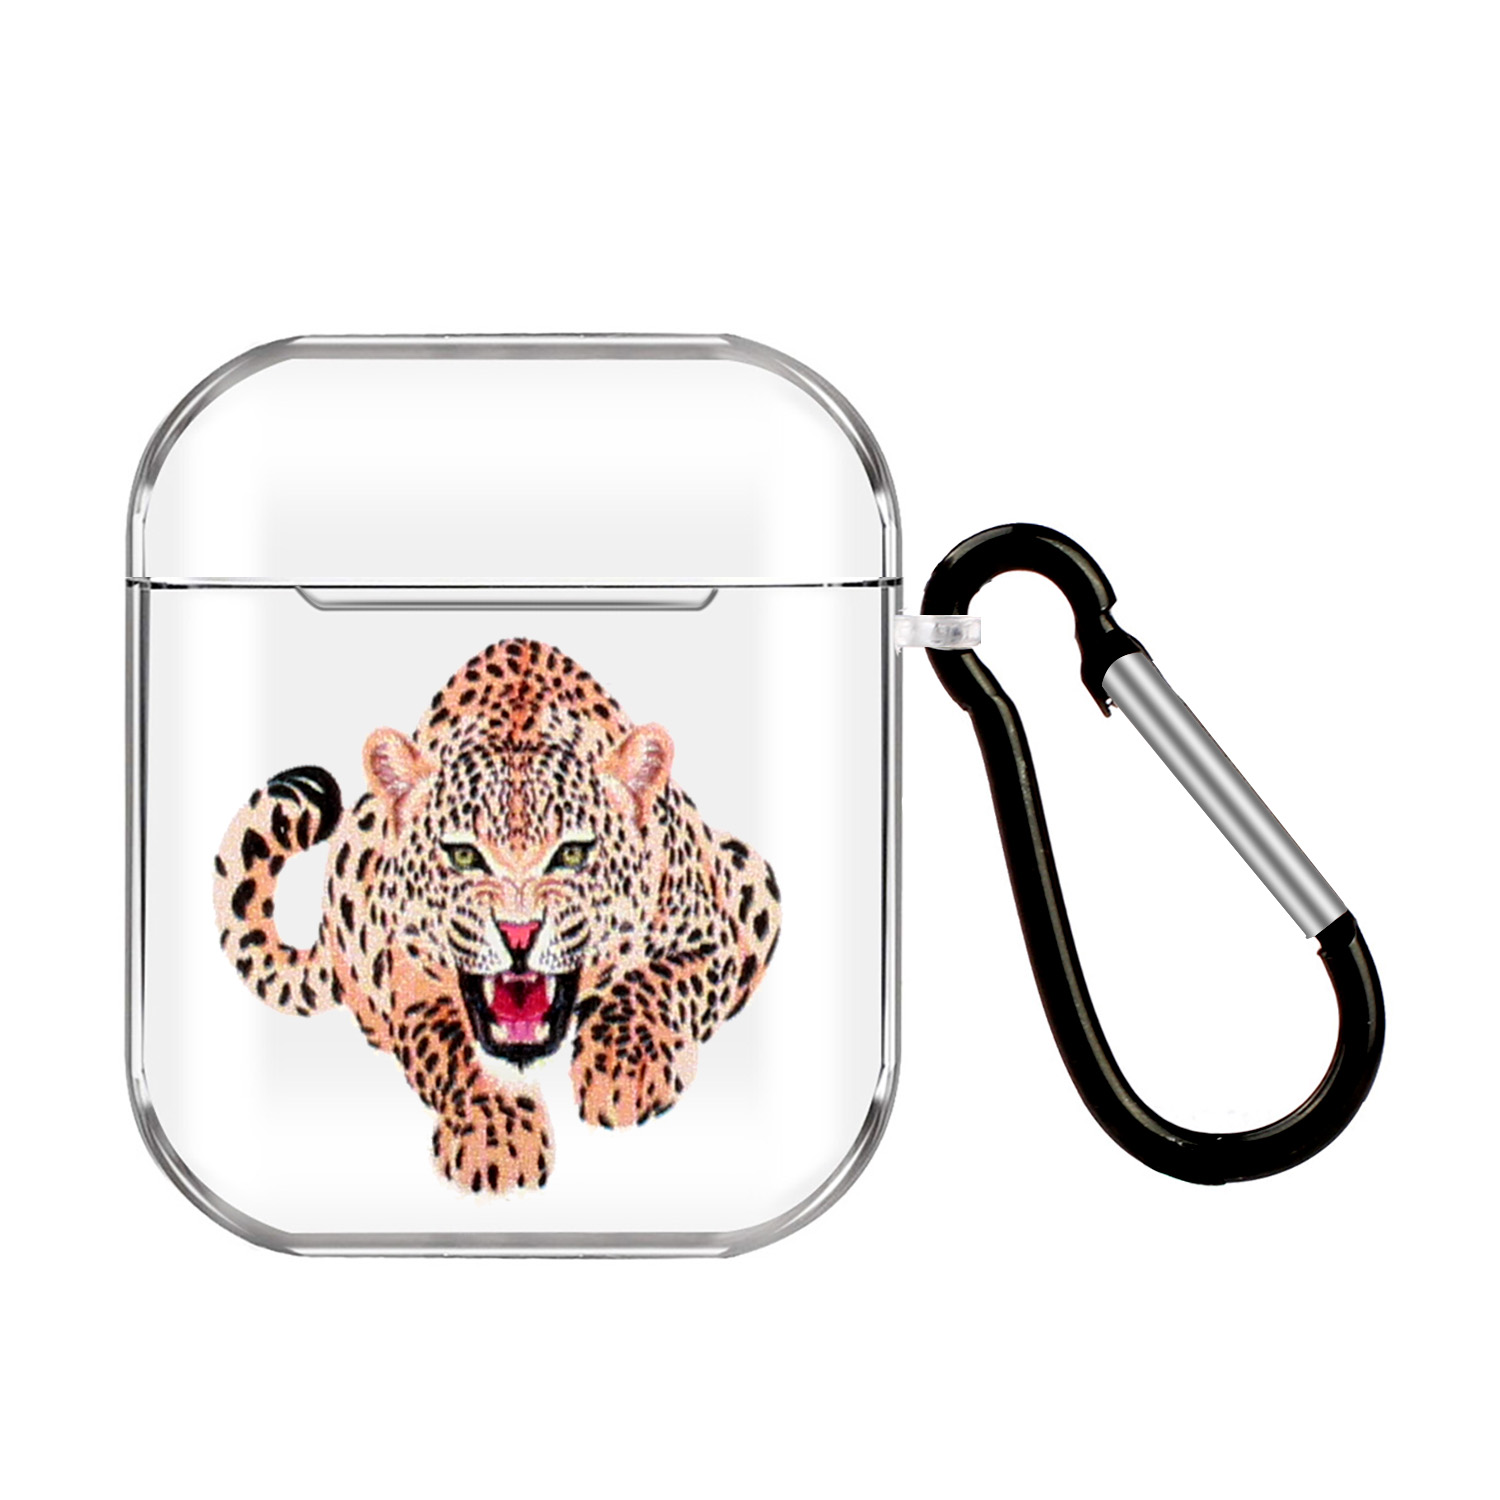 For AirPods 1/2 Headphones Case Transparent Earphone Shell with Metal Hook Overall Protection Cover 16 tigers